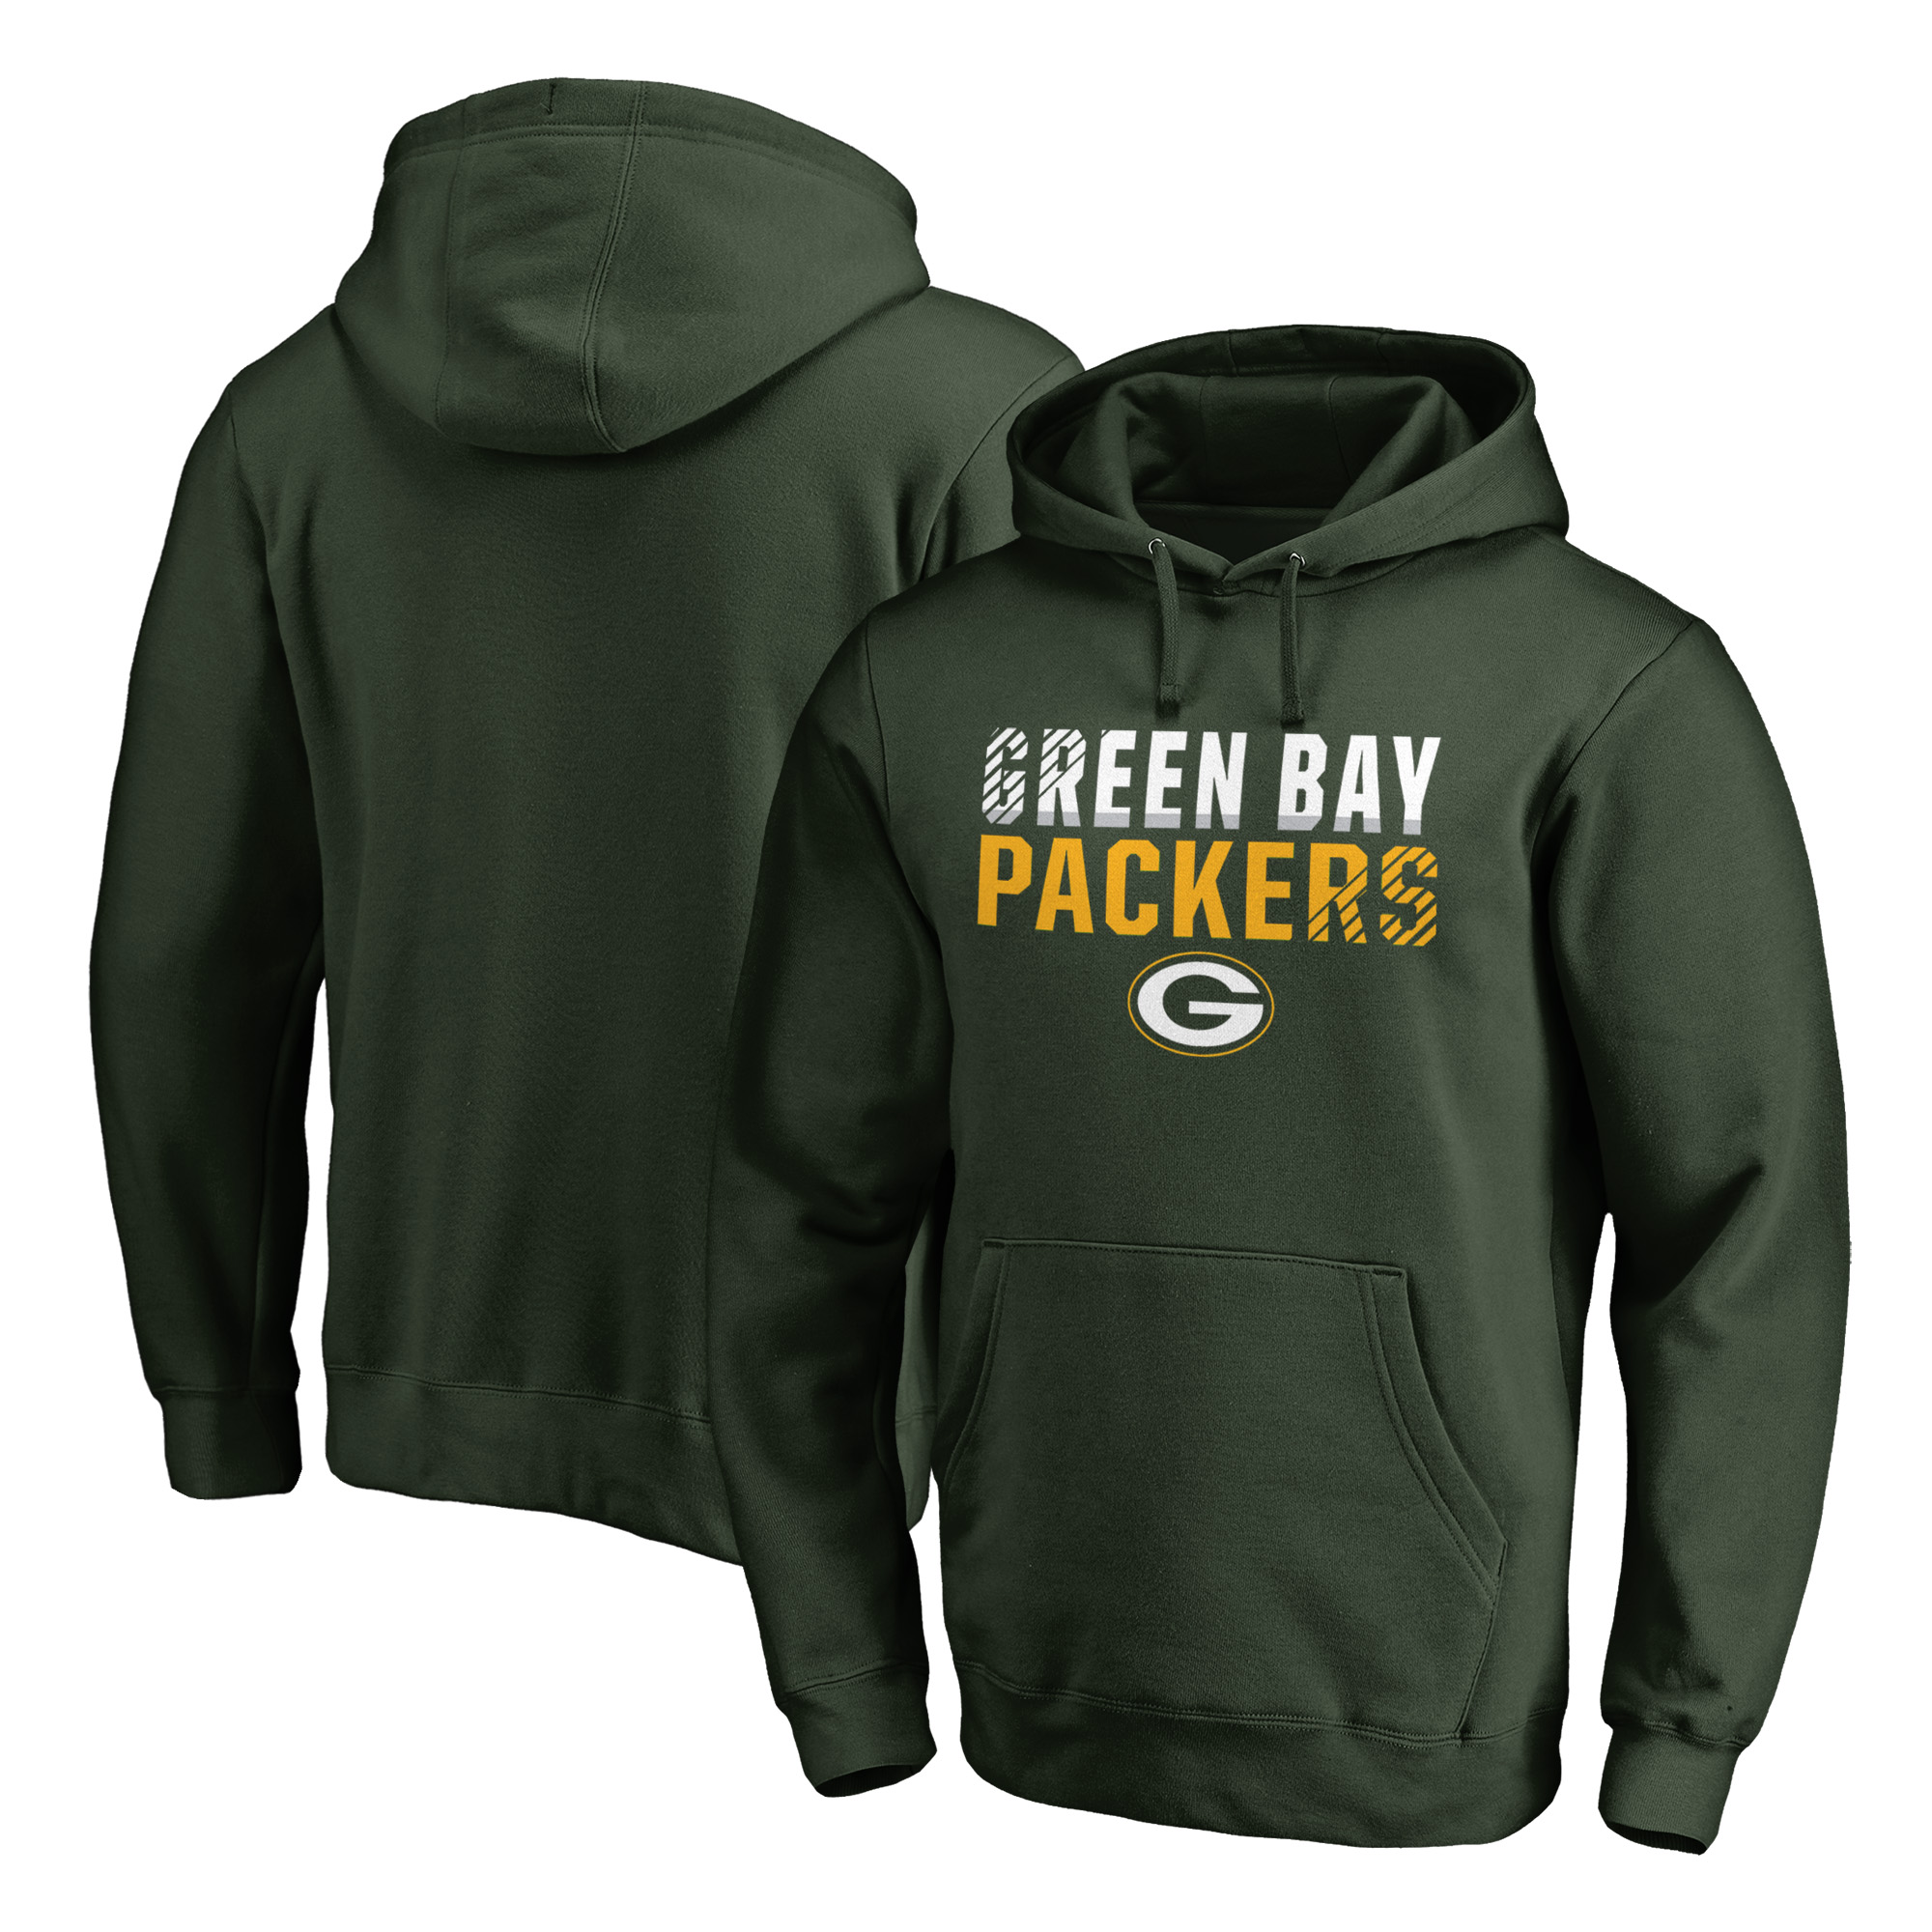 Green Bay Packers NFL Pro Line by Fanatics Branded Iconic Collection Fade Out Pullover Hoodie - Green